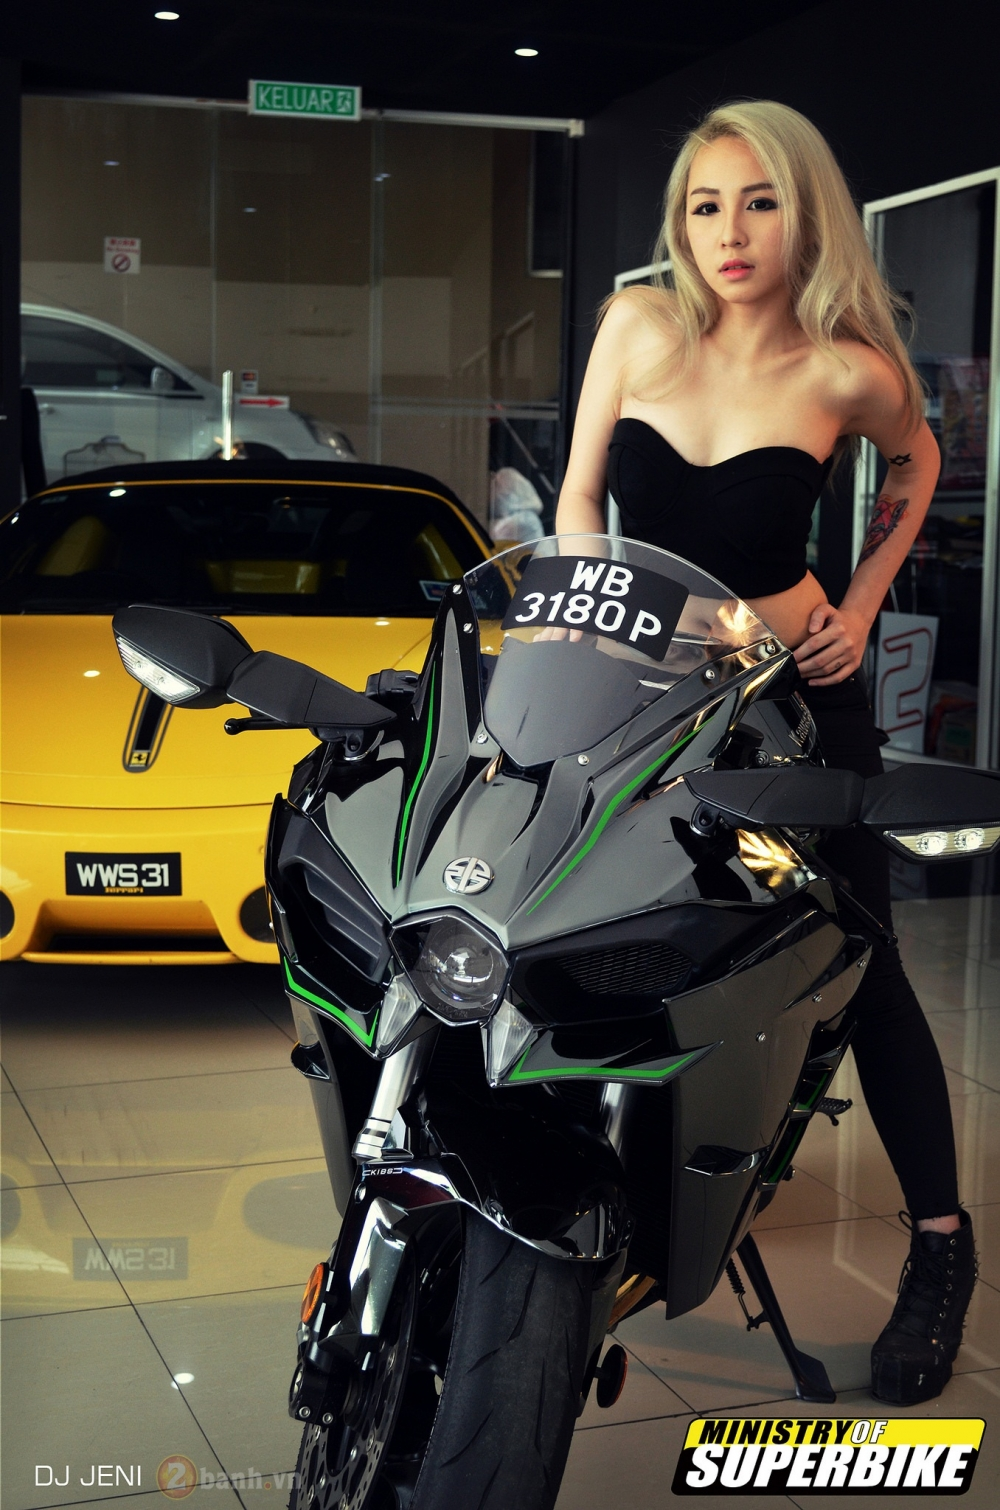 My nhan xam tro do dang cung quai vat toc do Kawasaki Ninja H2 - 8